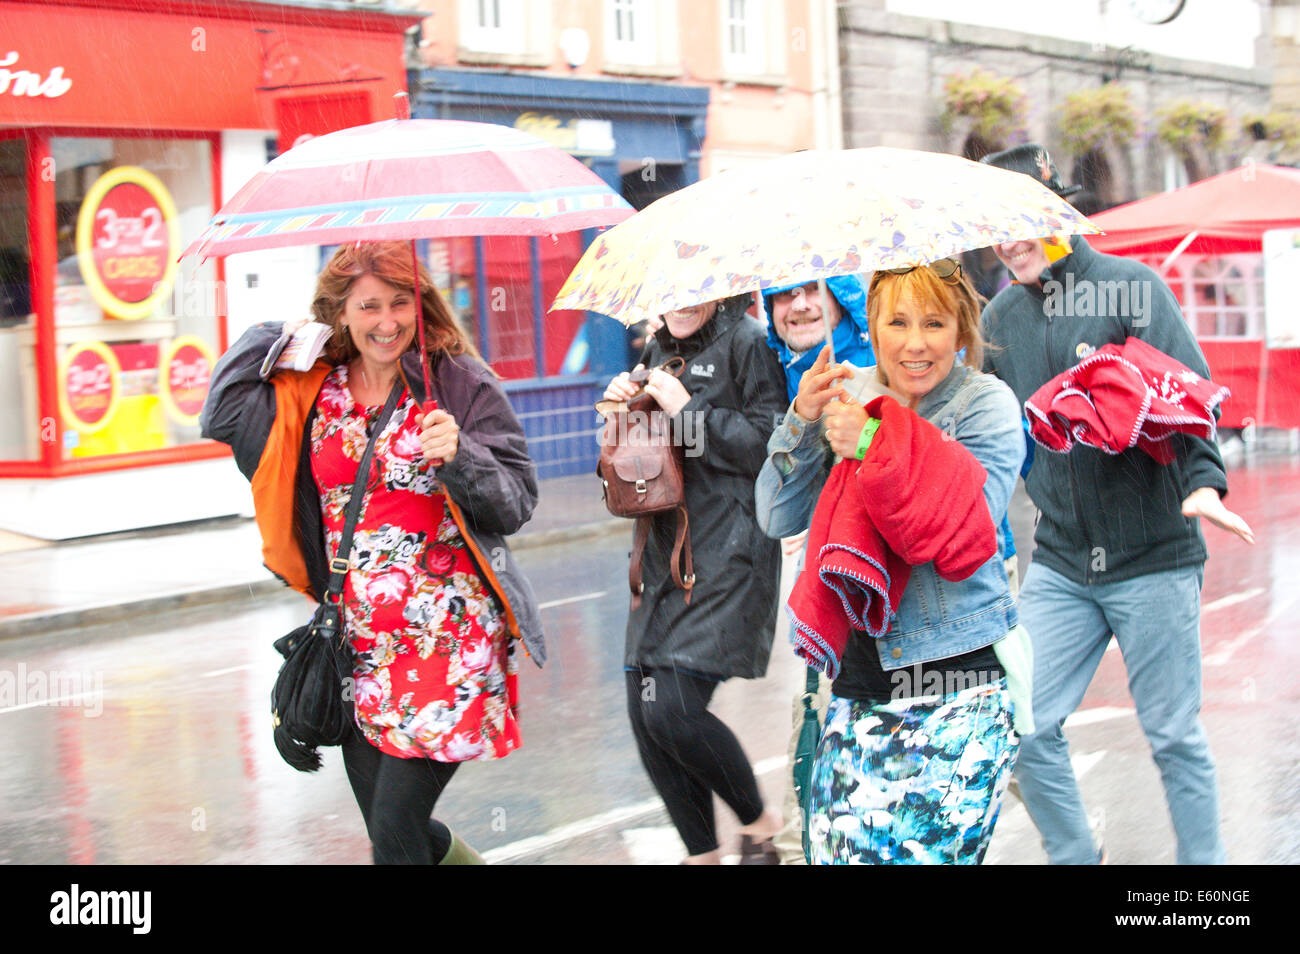 Brecon, Powys, Wales, UK. 10th August 2014. Festival goers are not disheartened by the rain which hits Brecon on - Stock Image